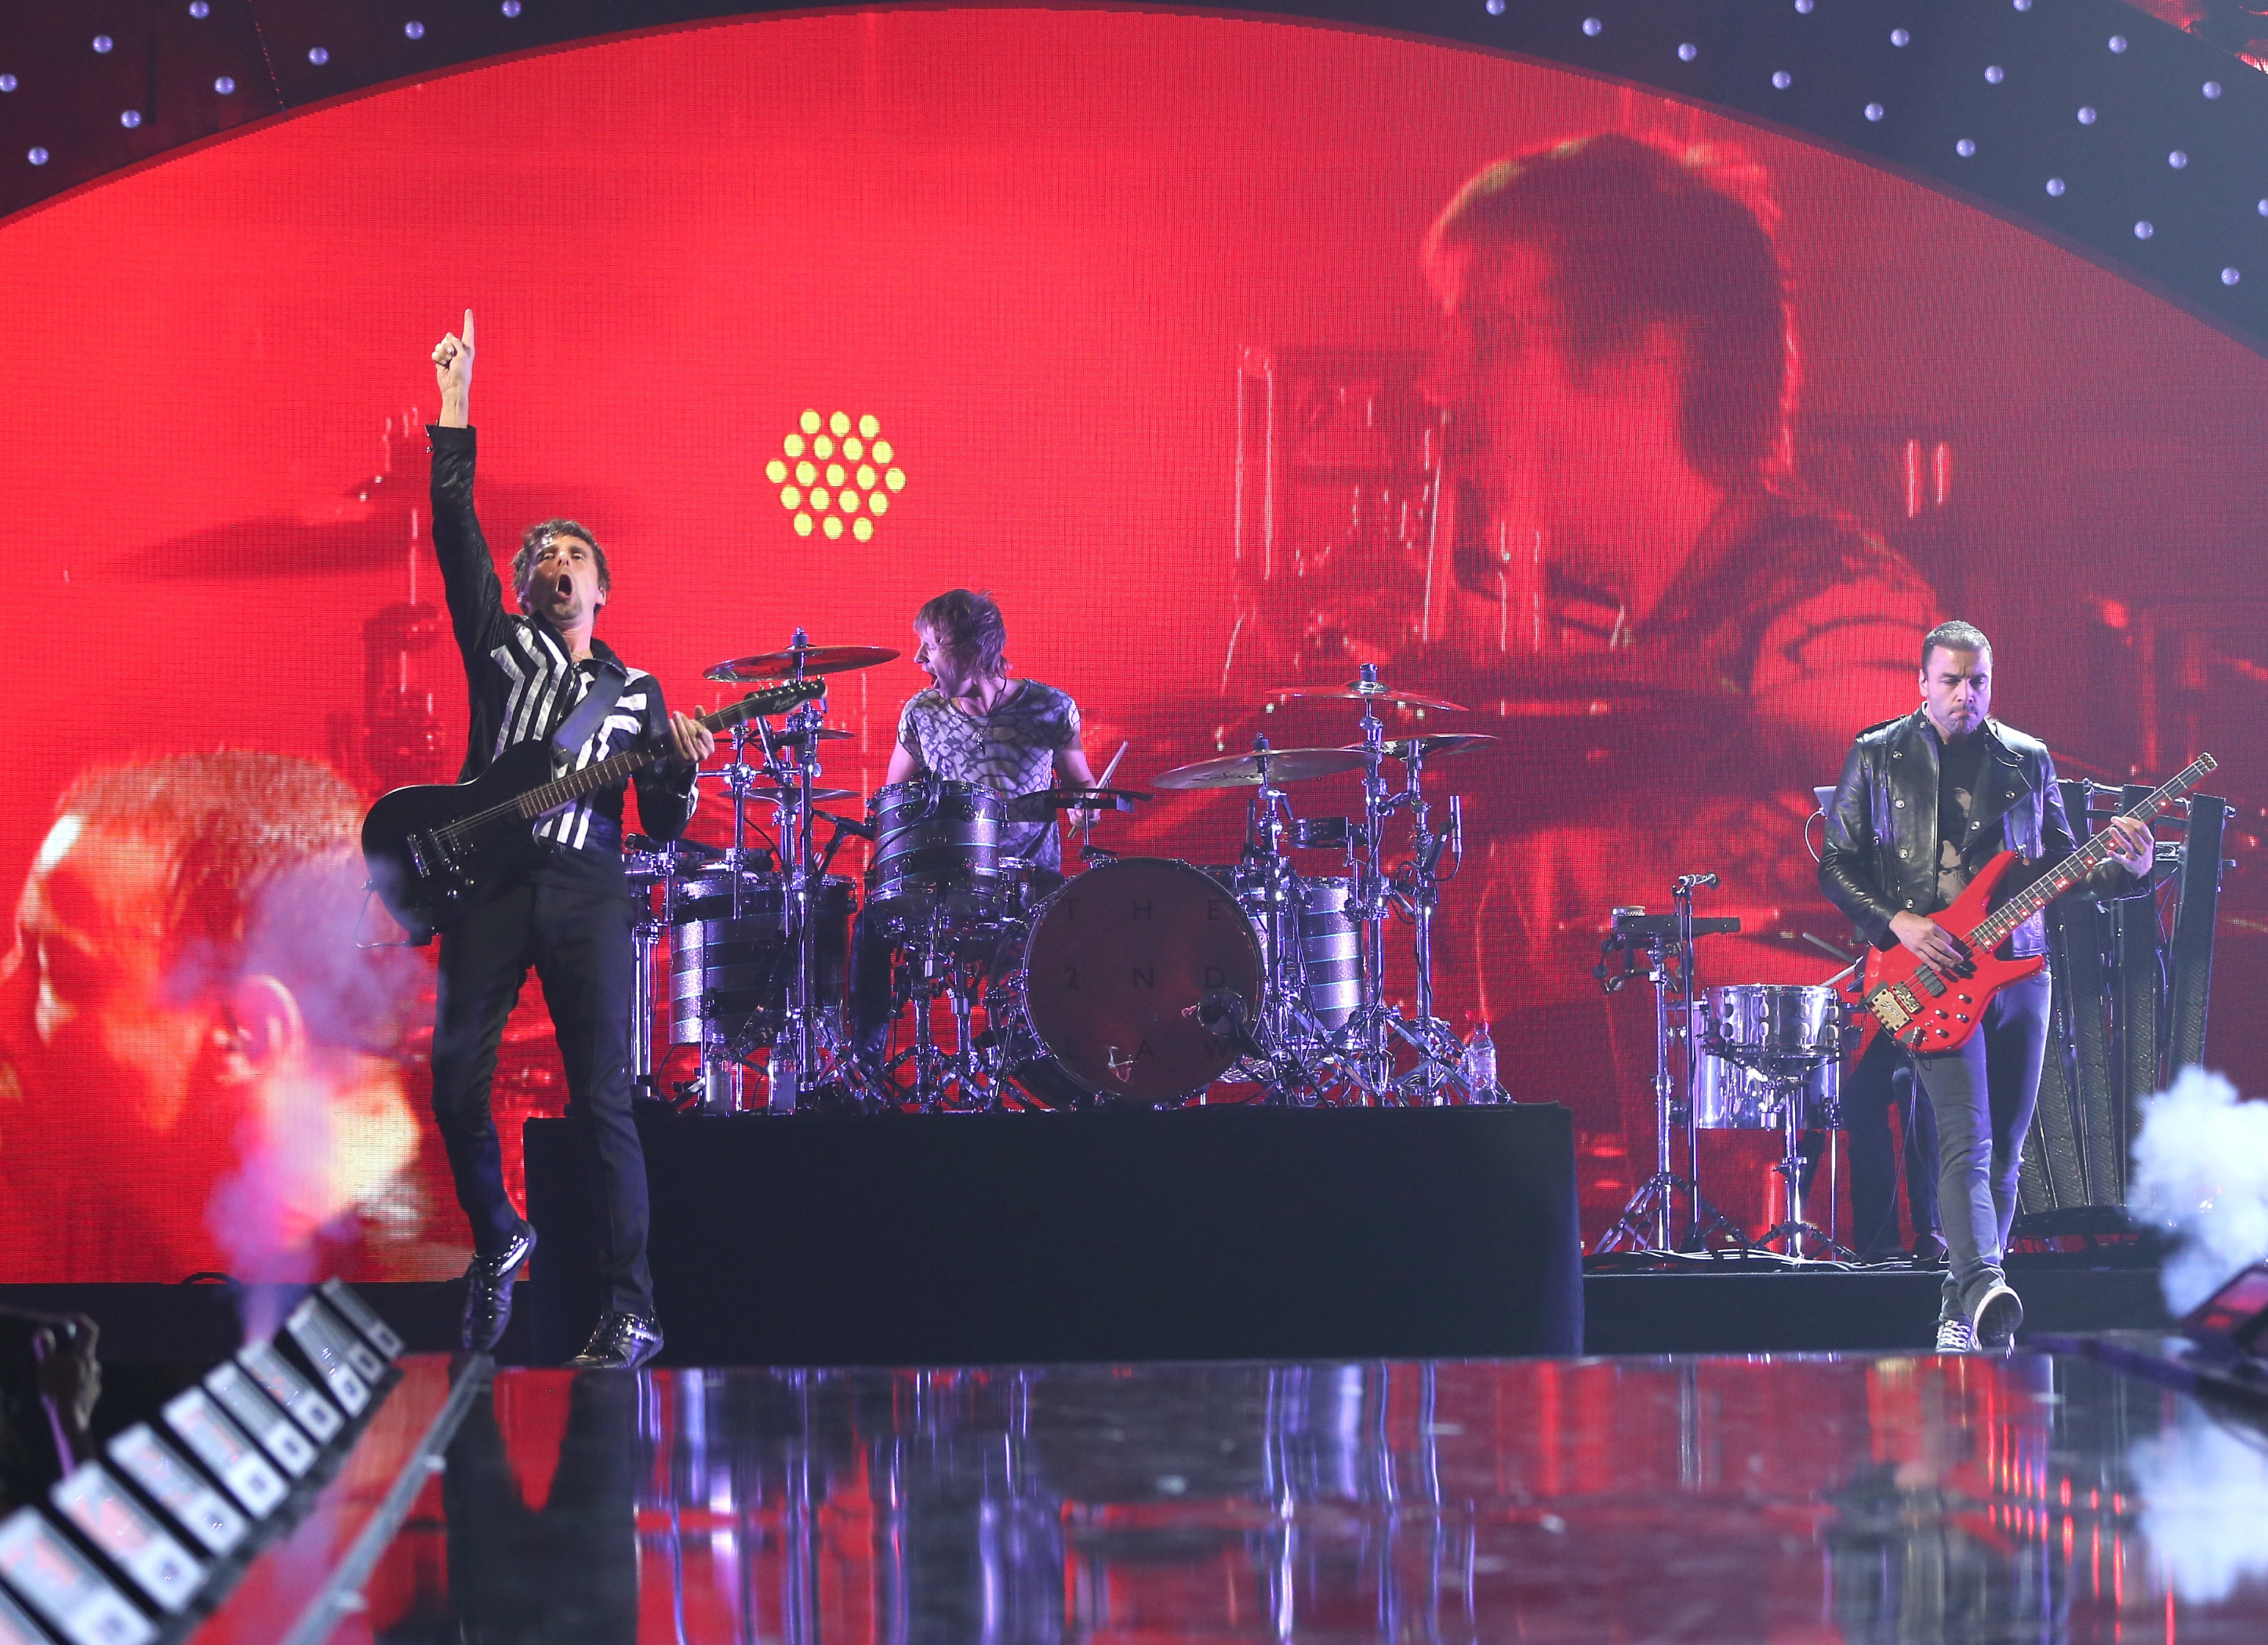 LAS VEGAS, NV - SEPTEMBER 20: Musician Matthew Bellamy of the band Muse performs onstage during the iHeartRadio Music Festival at the MGM Grand Garden Arena on September 20, 2013 in Las Vegas, Nevada. (Photo by Christopher Polk/Getty Images for Clear Channel)